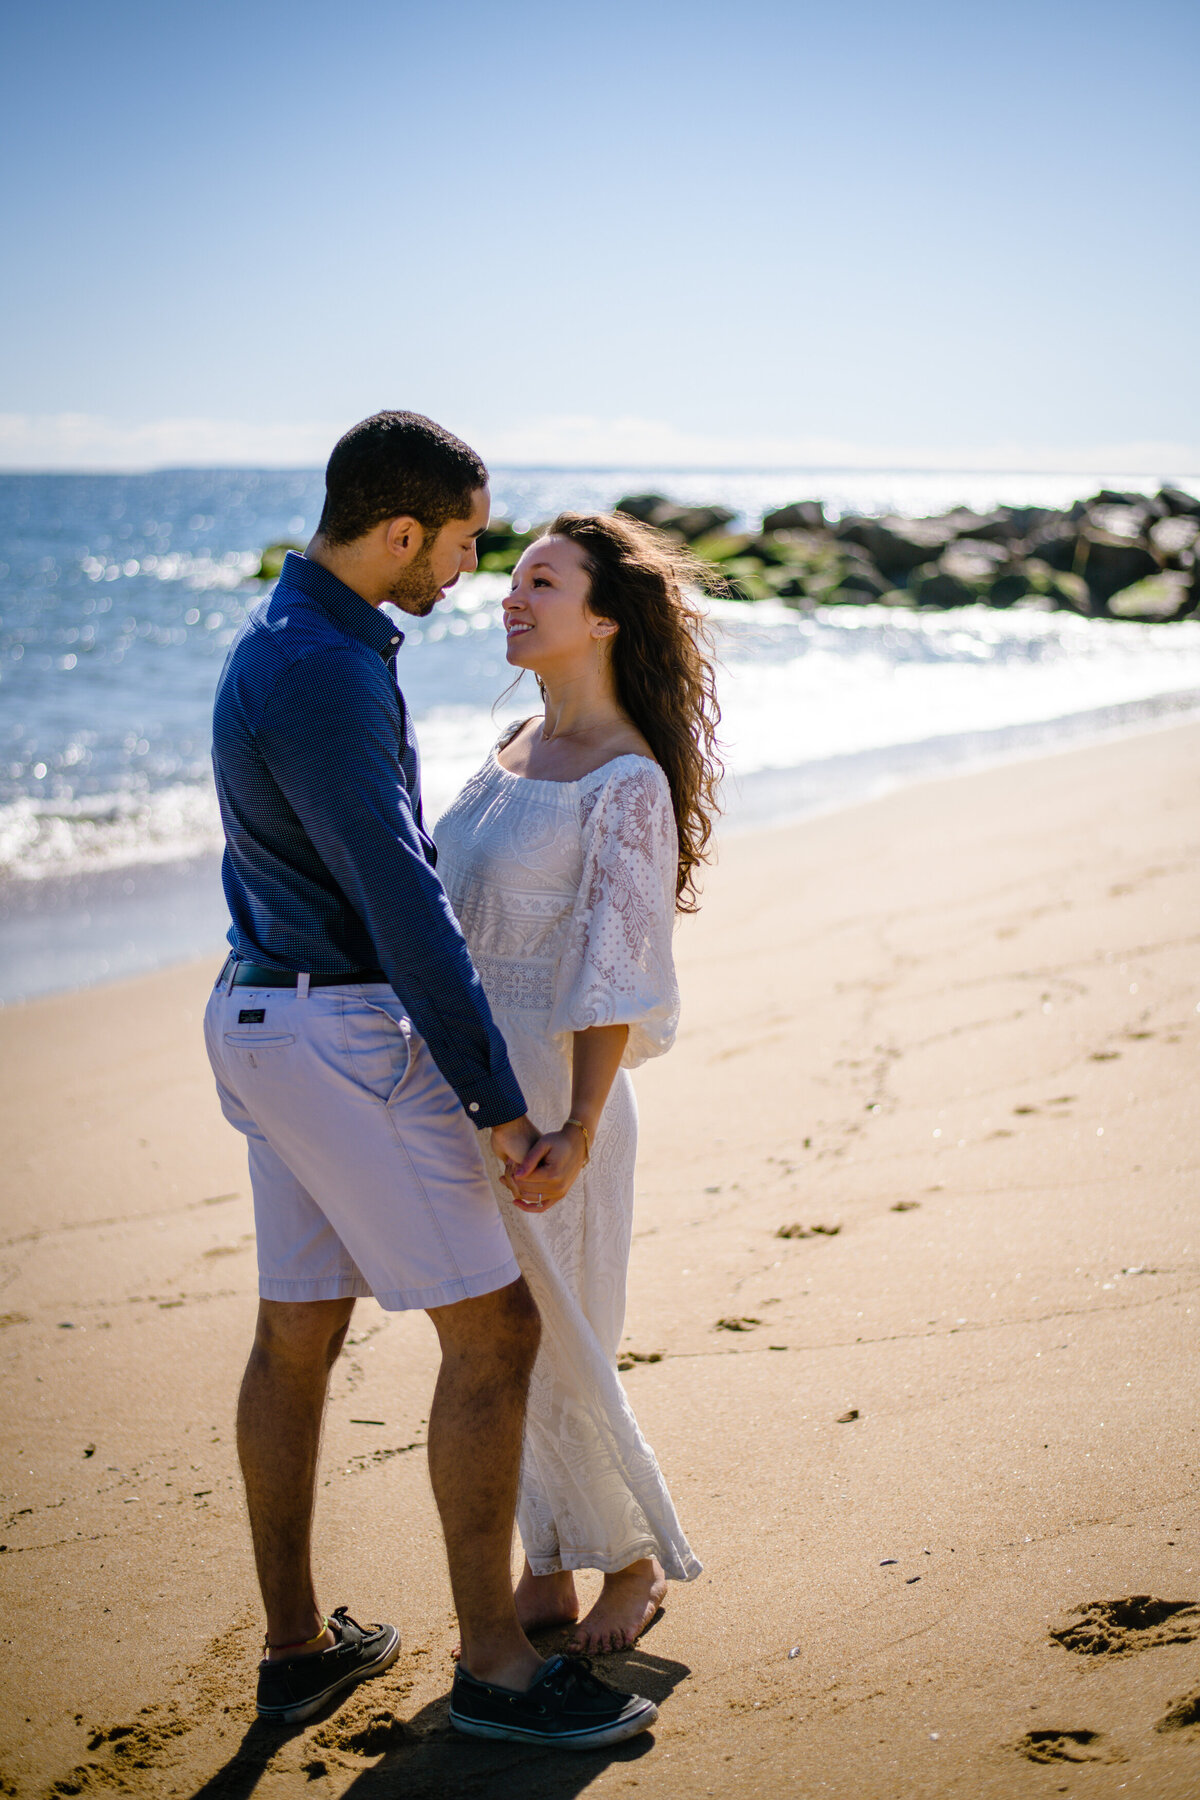 Plum Island engagement session at beach